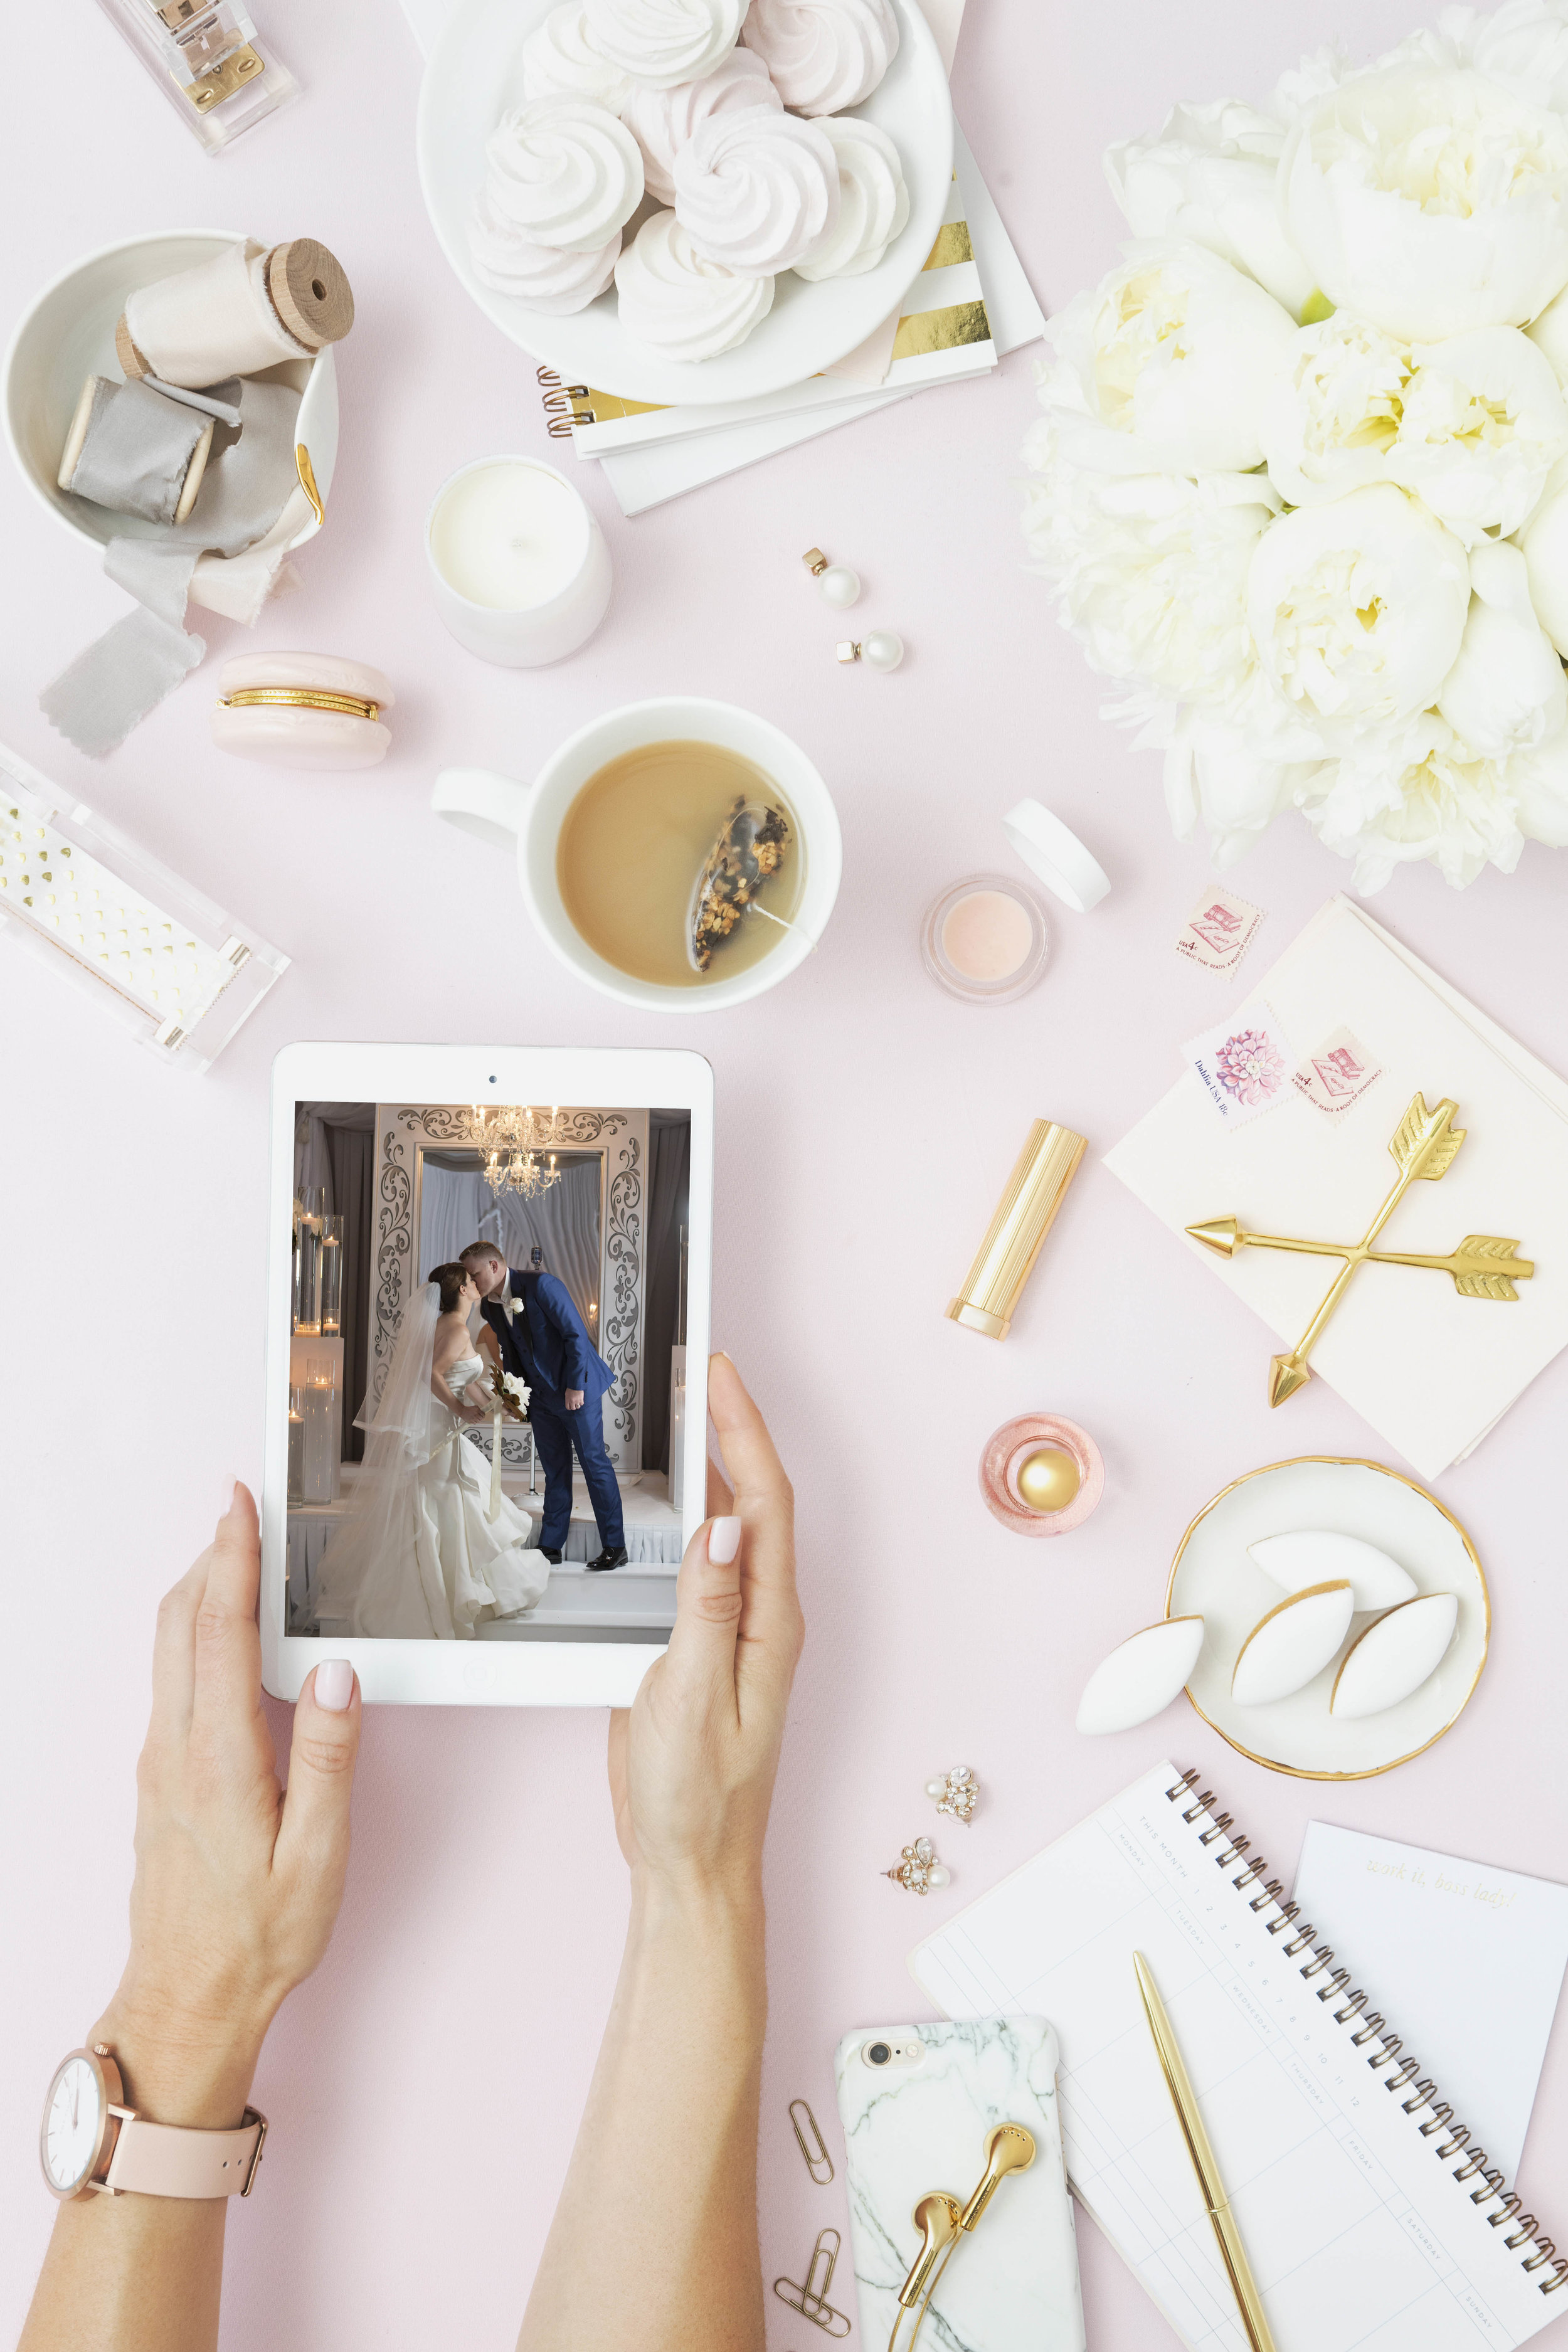 Create a custom wedding magazine that is personalized and published just for you. Be a celebrity in your own community.